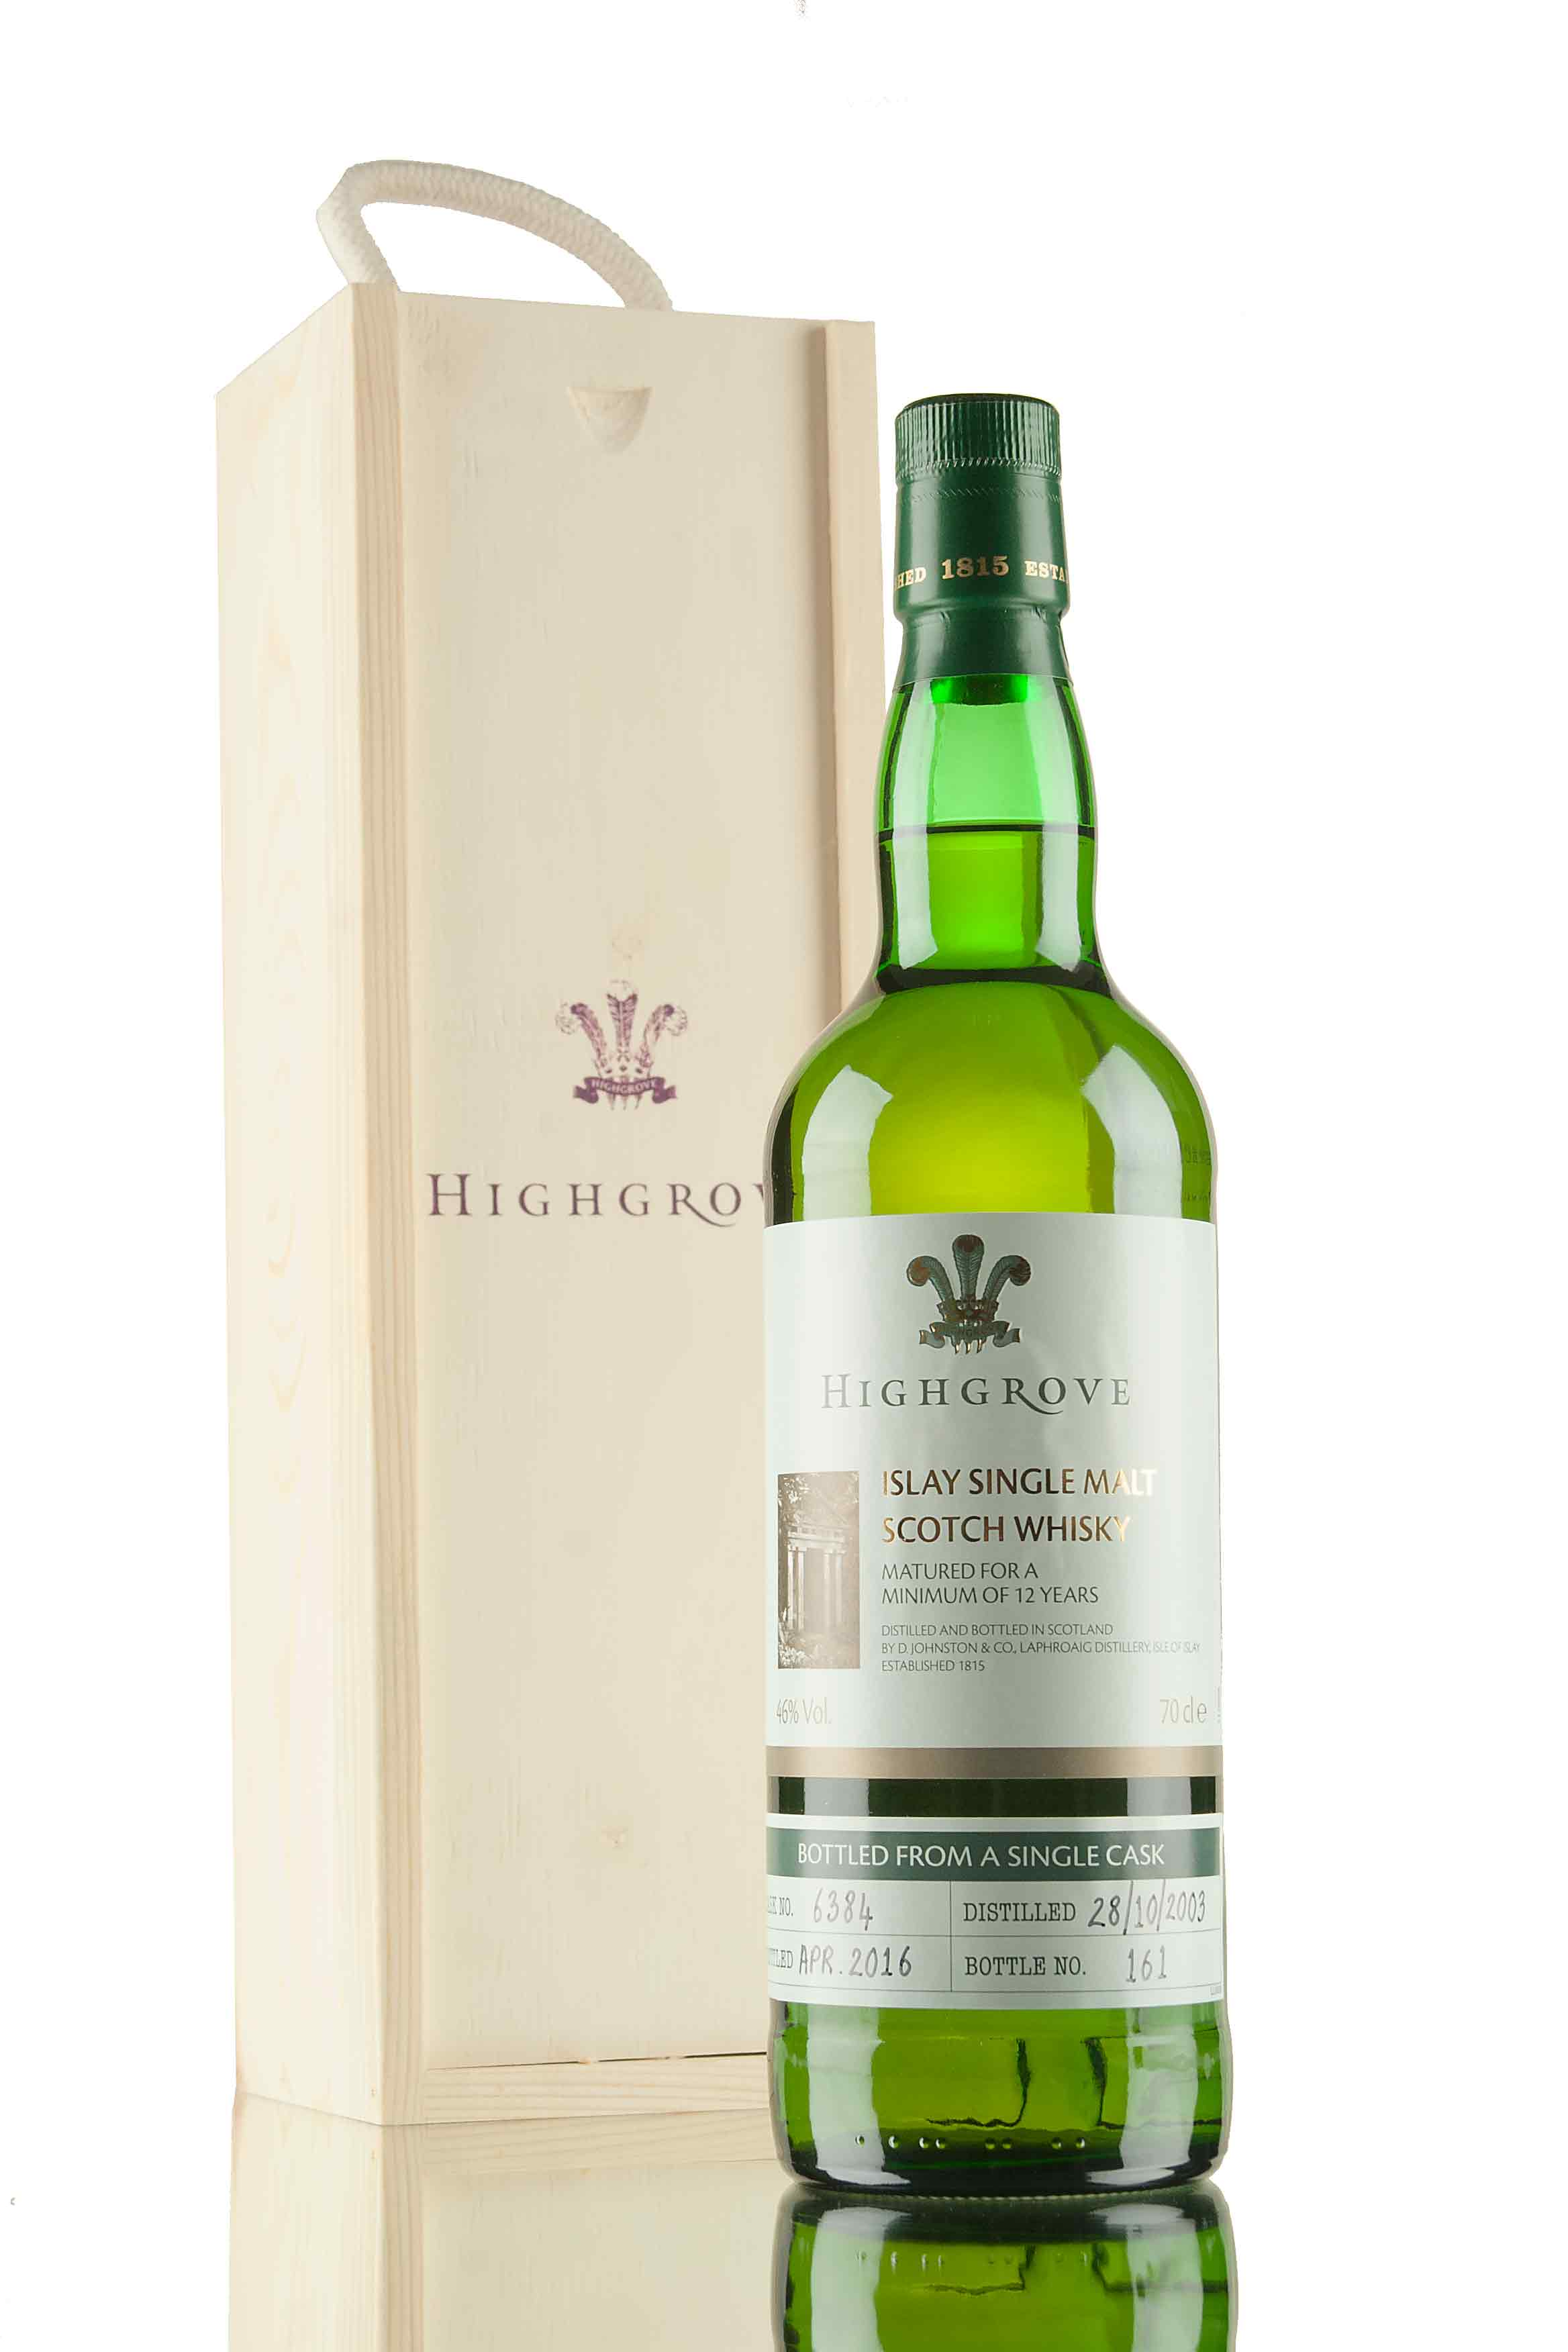 Laphroaig 12 Year Old - 2003 / Single Cask 6384 (Highgrove)